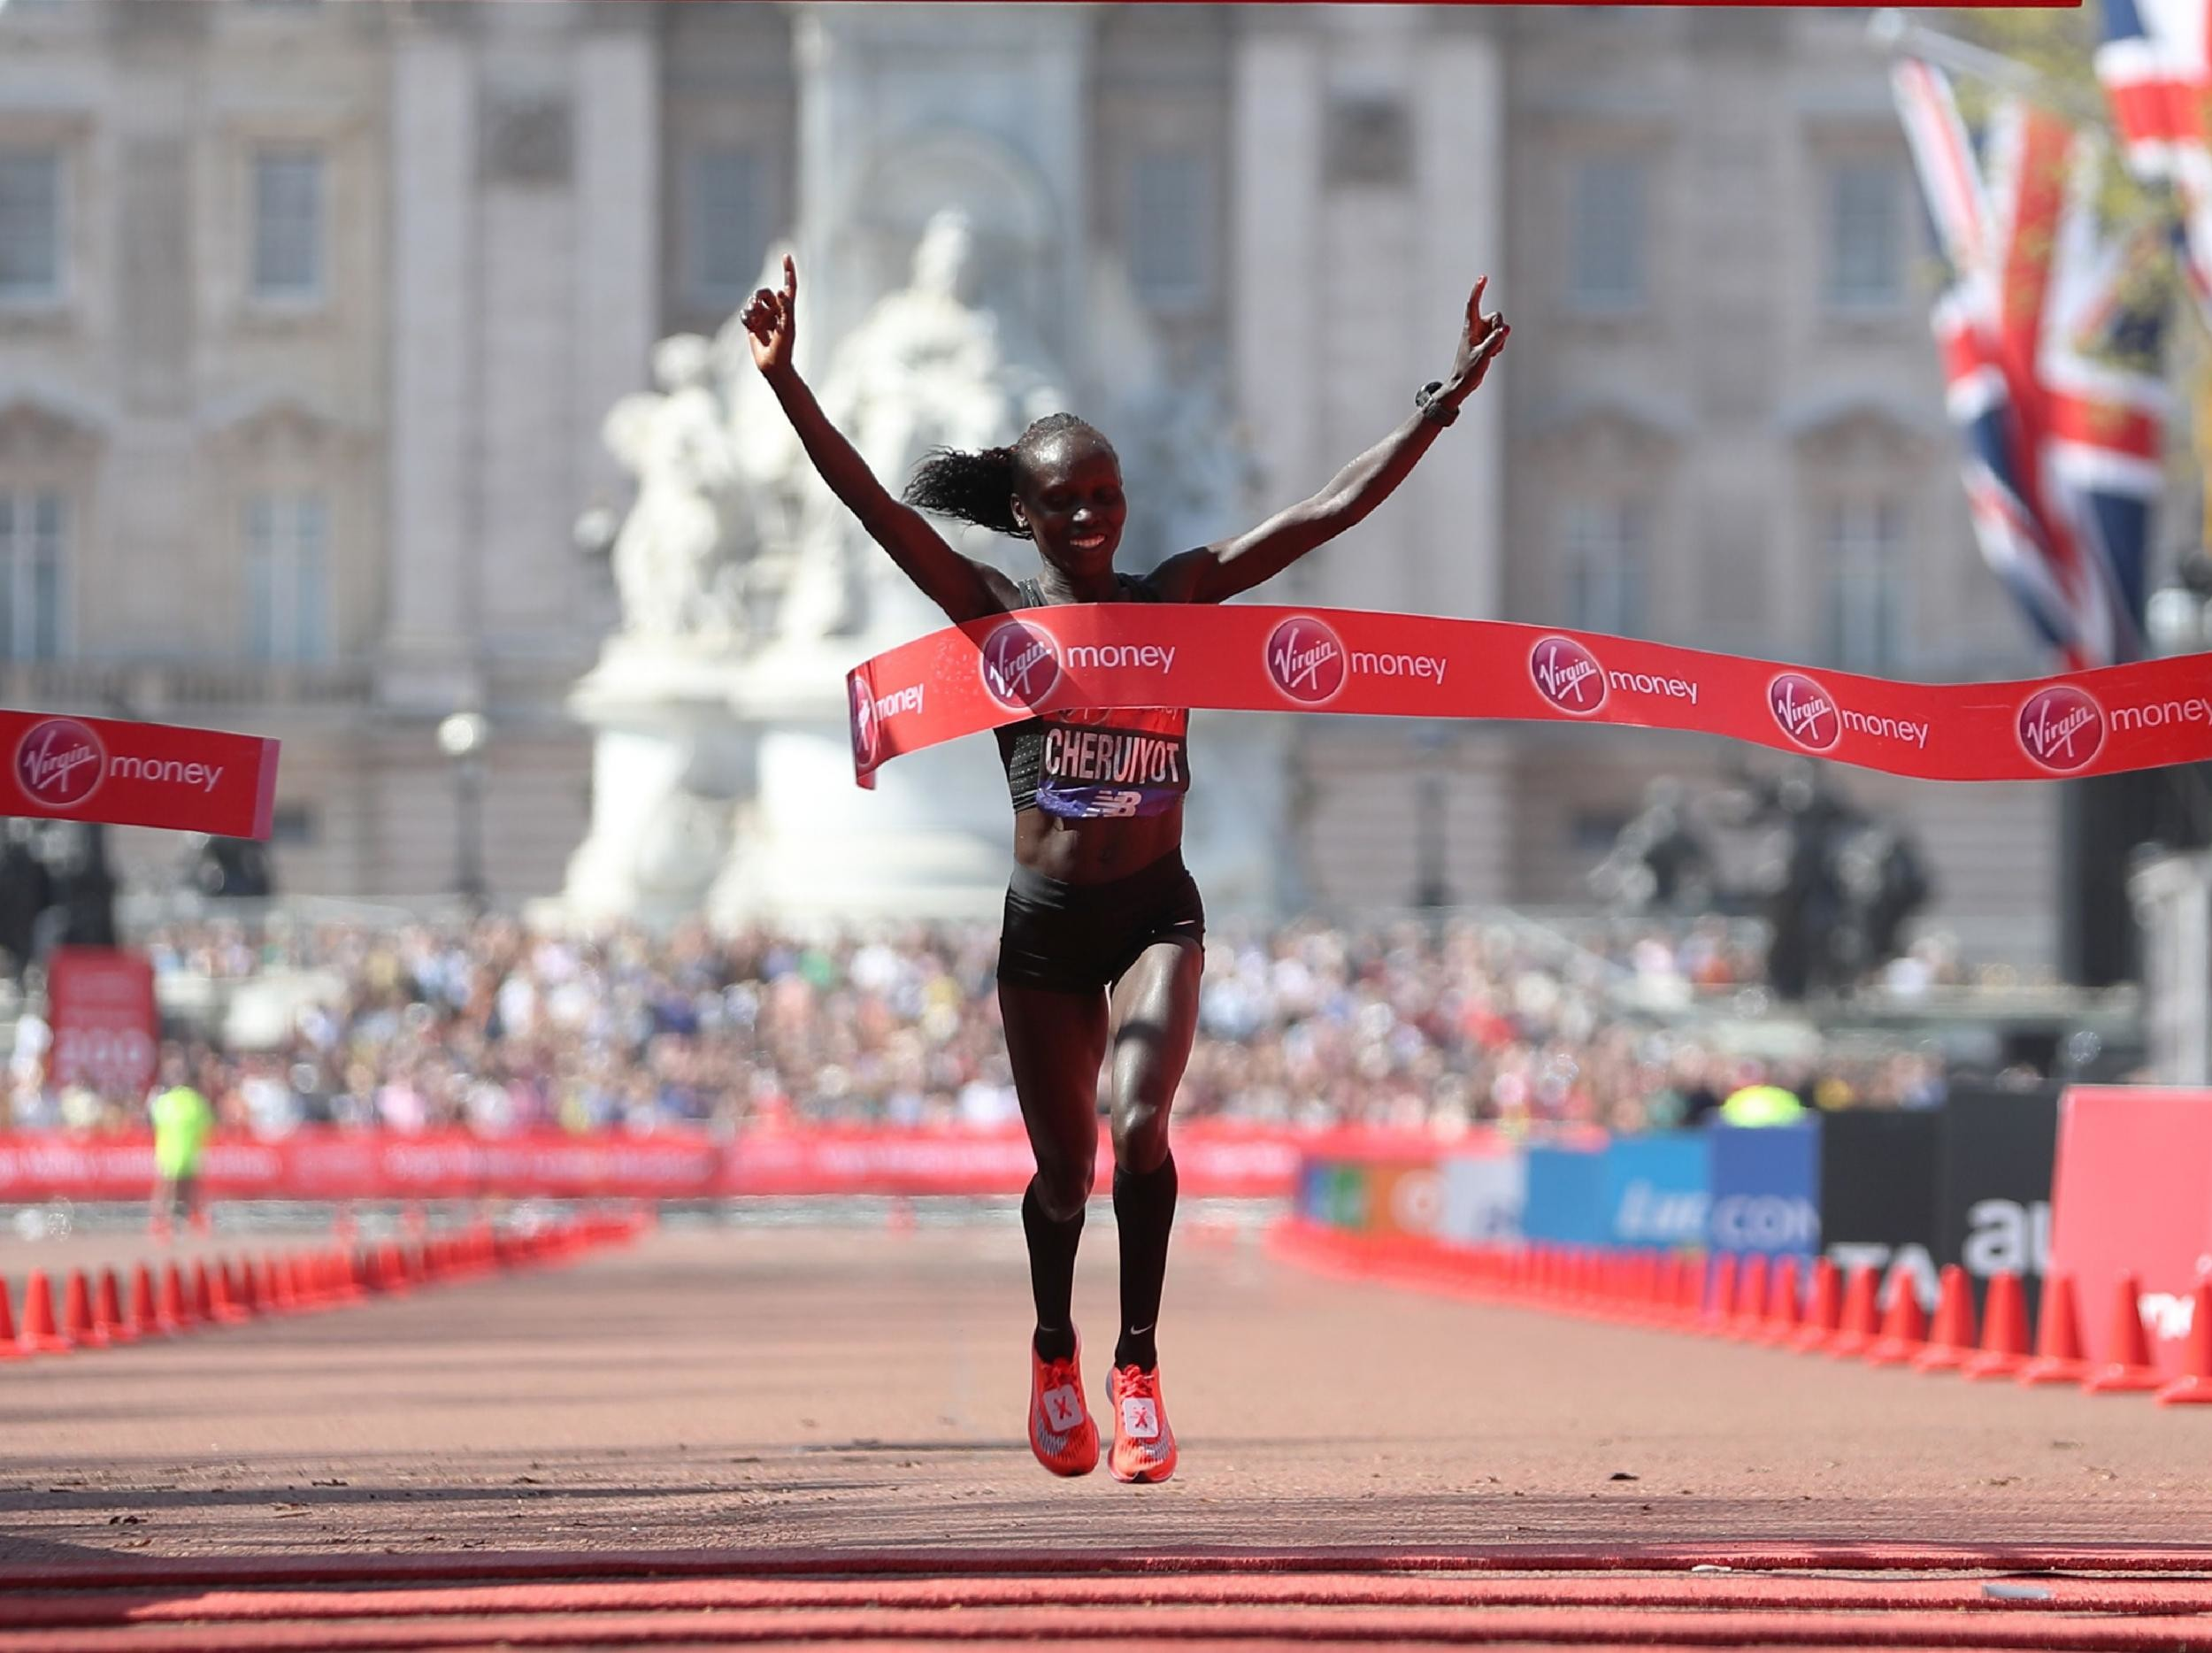 Defending champion Vivian Cheruiyot will defend her London Marathon title in April